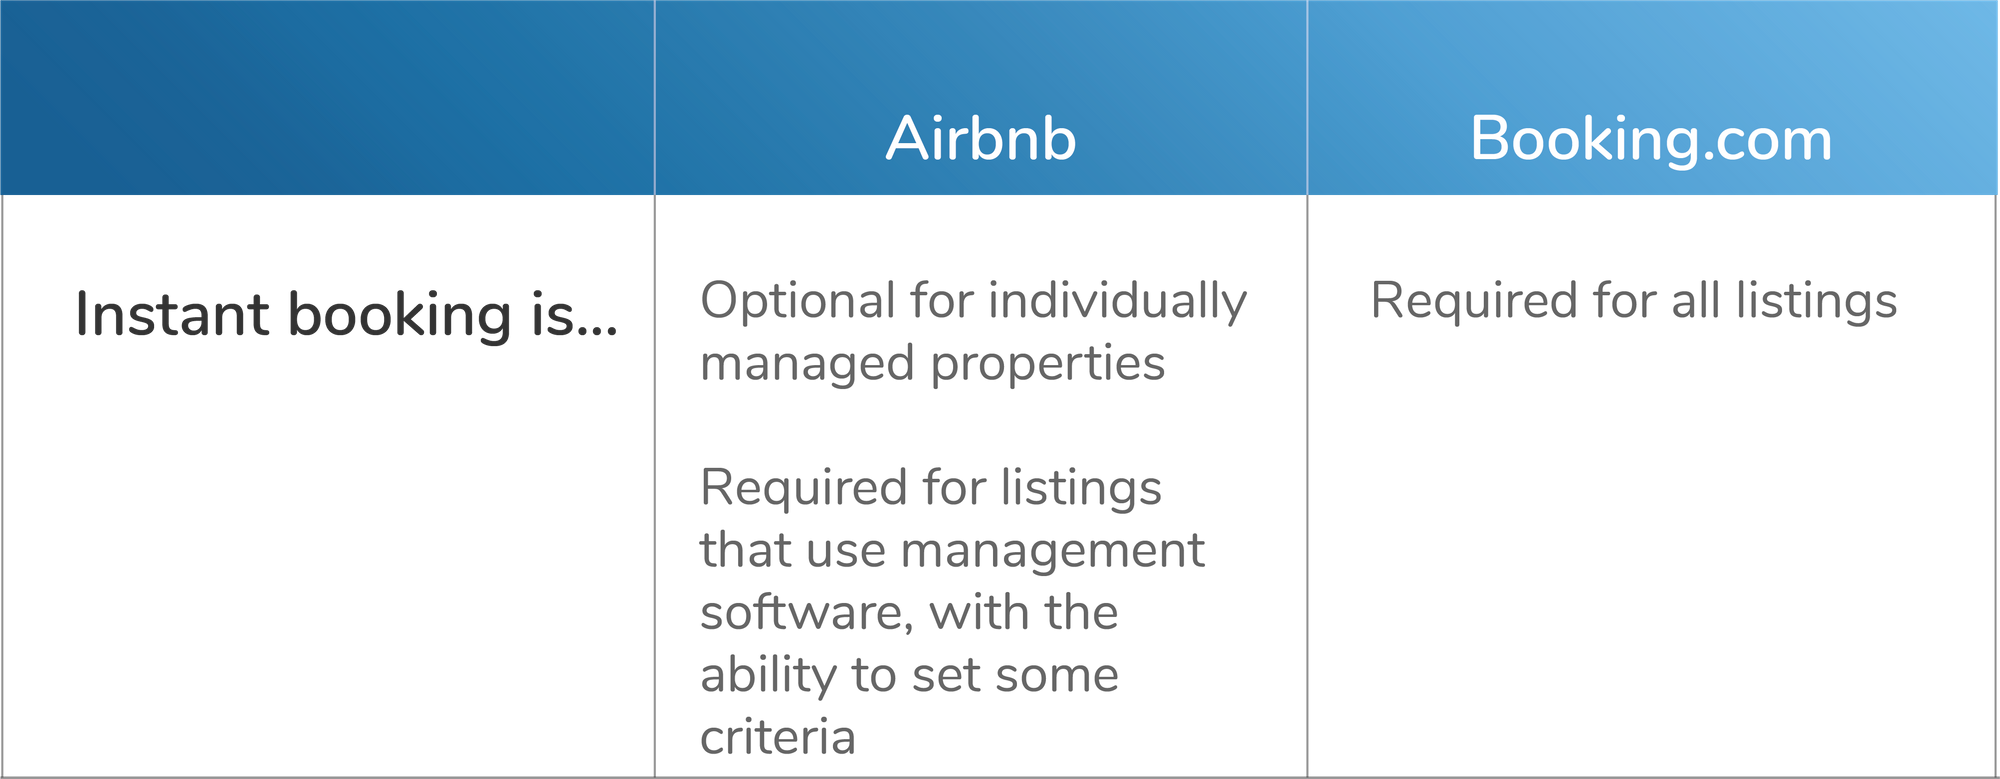 Airbnb and Booking.com instant bookings comparison